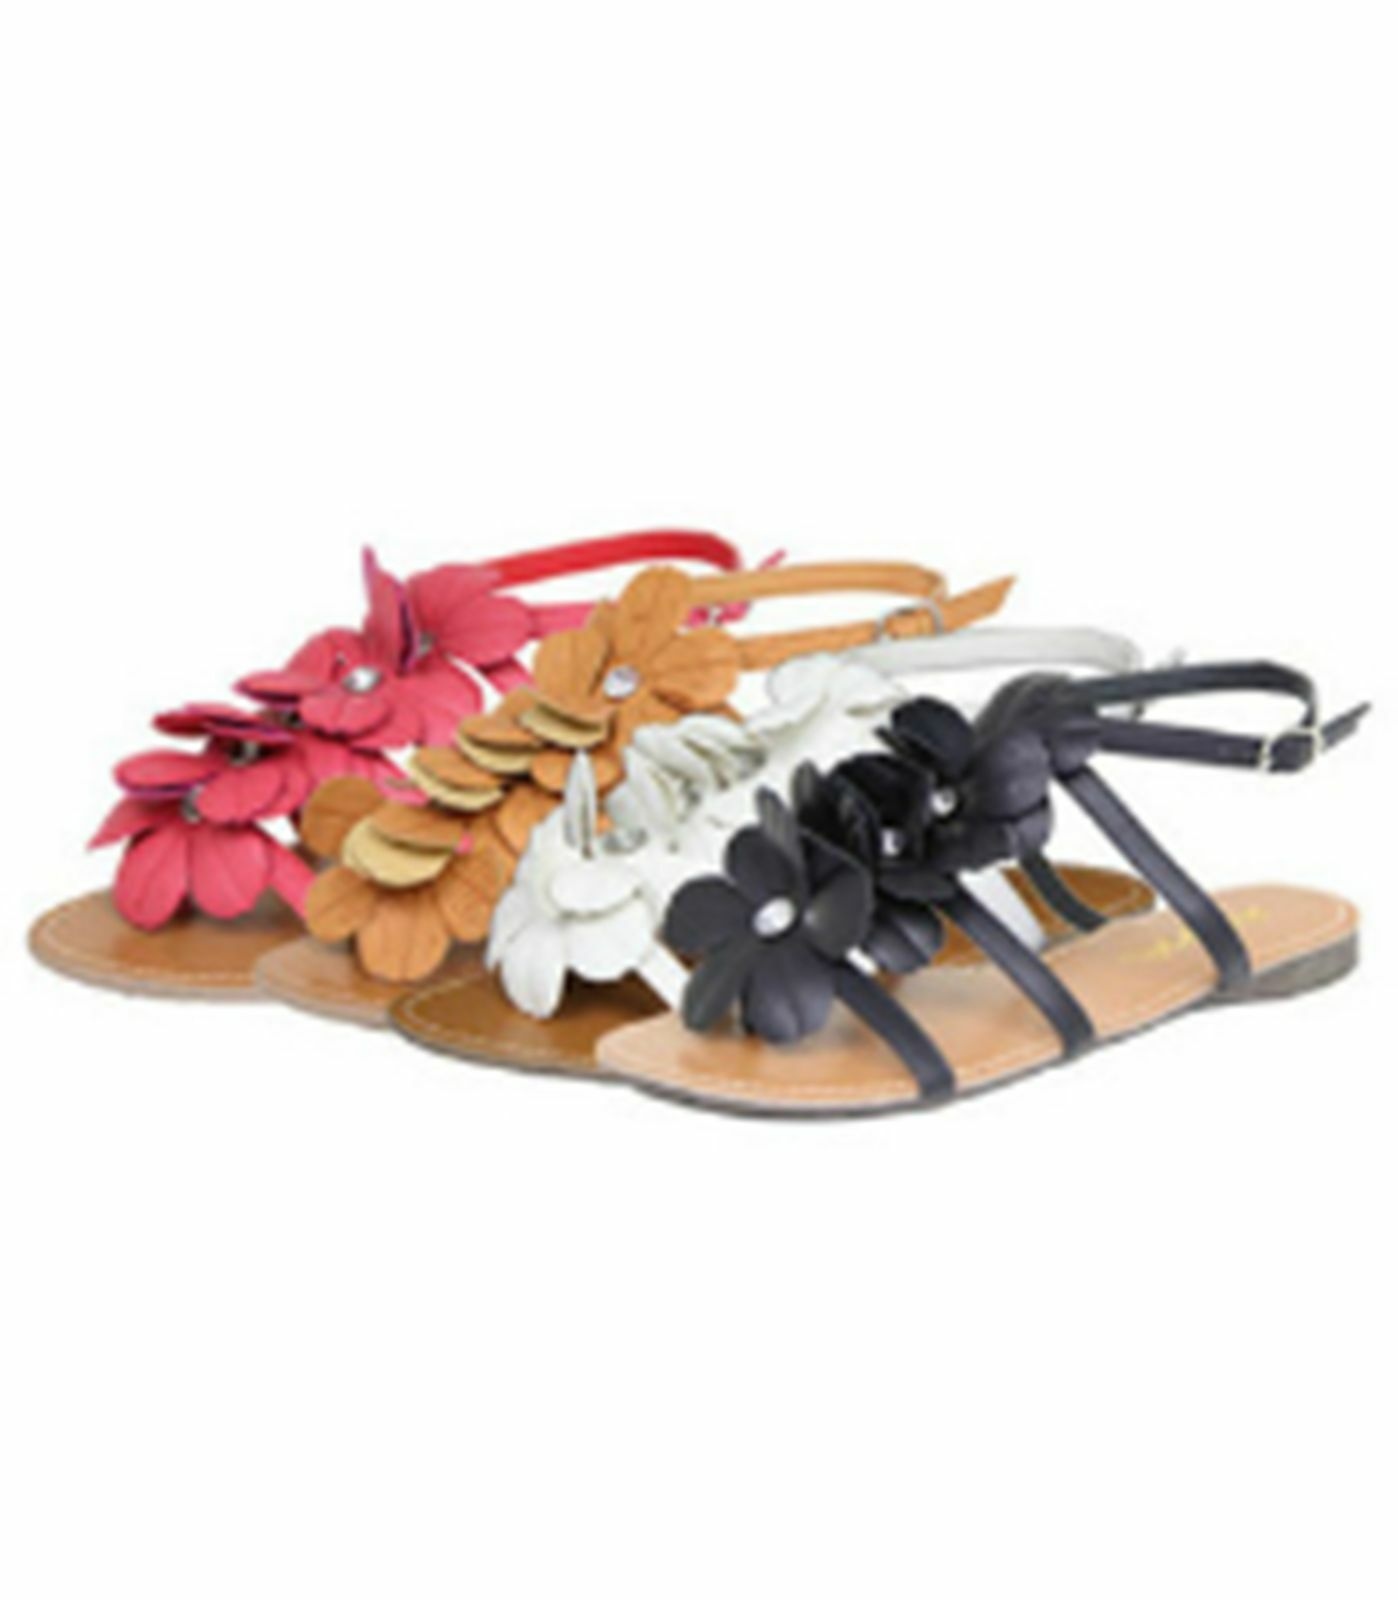 Brand New Bonnie Floral Strappy Thong Flat 6.5-7.5 Sandal Blue or Red 6.5-7.5 Flat Flowers 2568e8